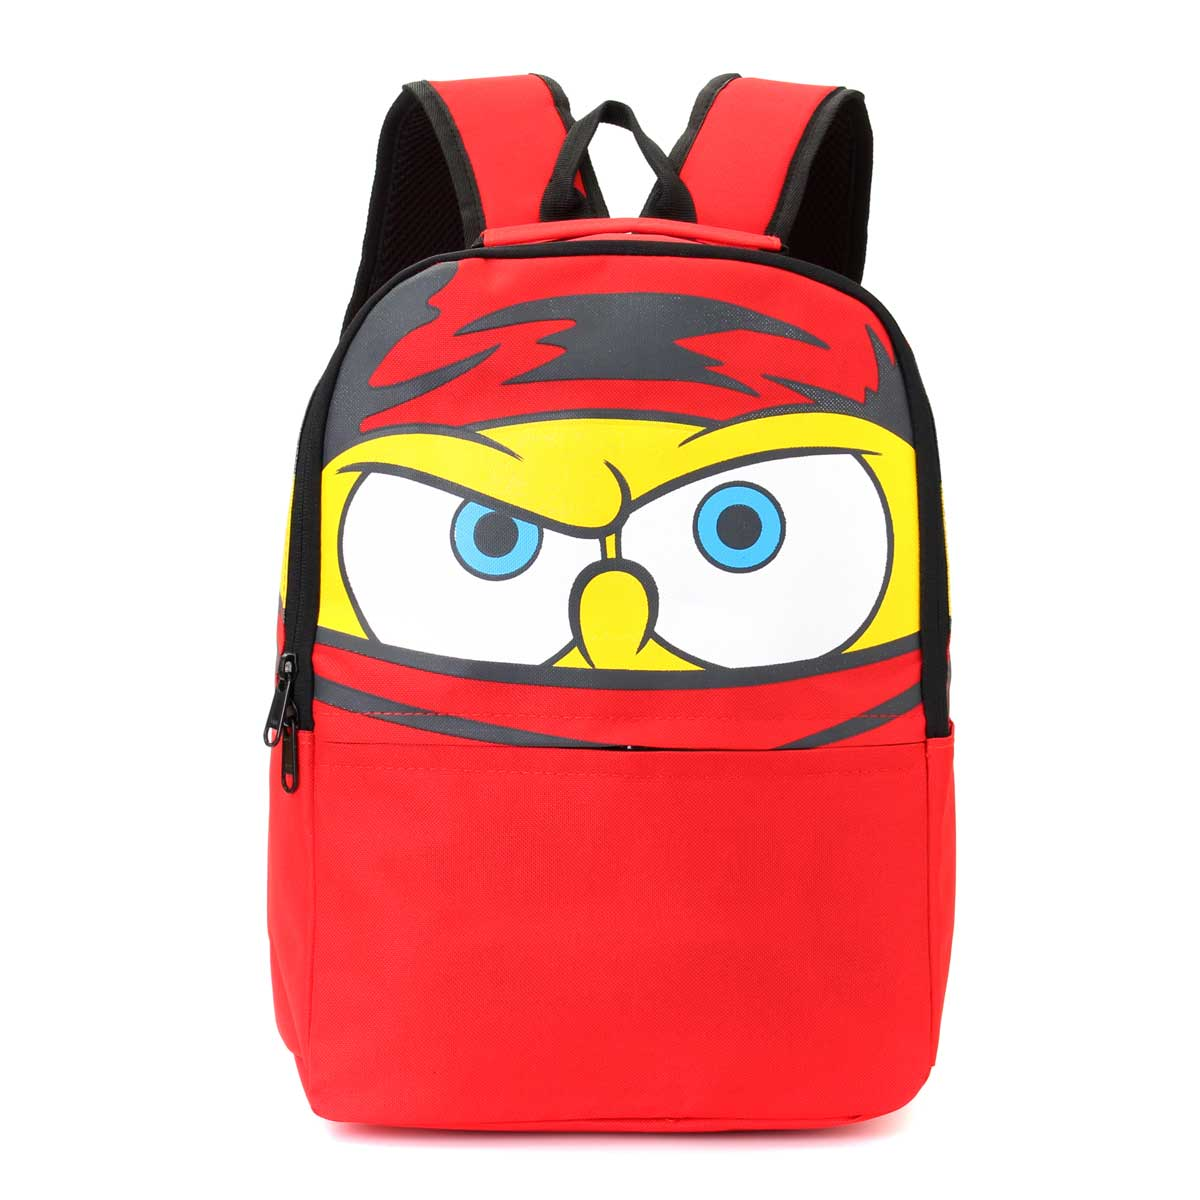 New 2016 Women Backpacks Cartton-Bookbags Canvas Owl Printing Backpack Cute School Bags Rucksack for Teenager Girls Mochila